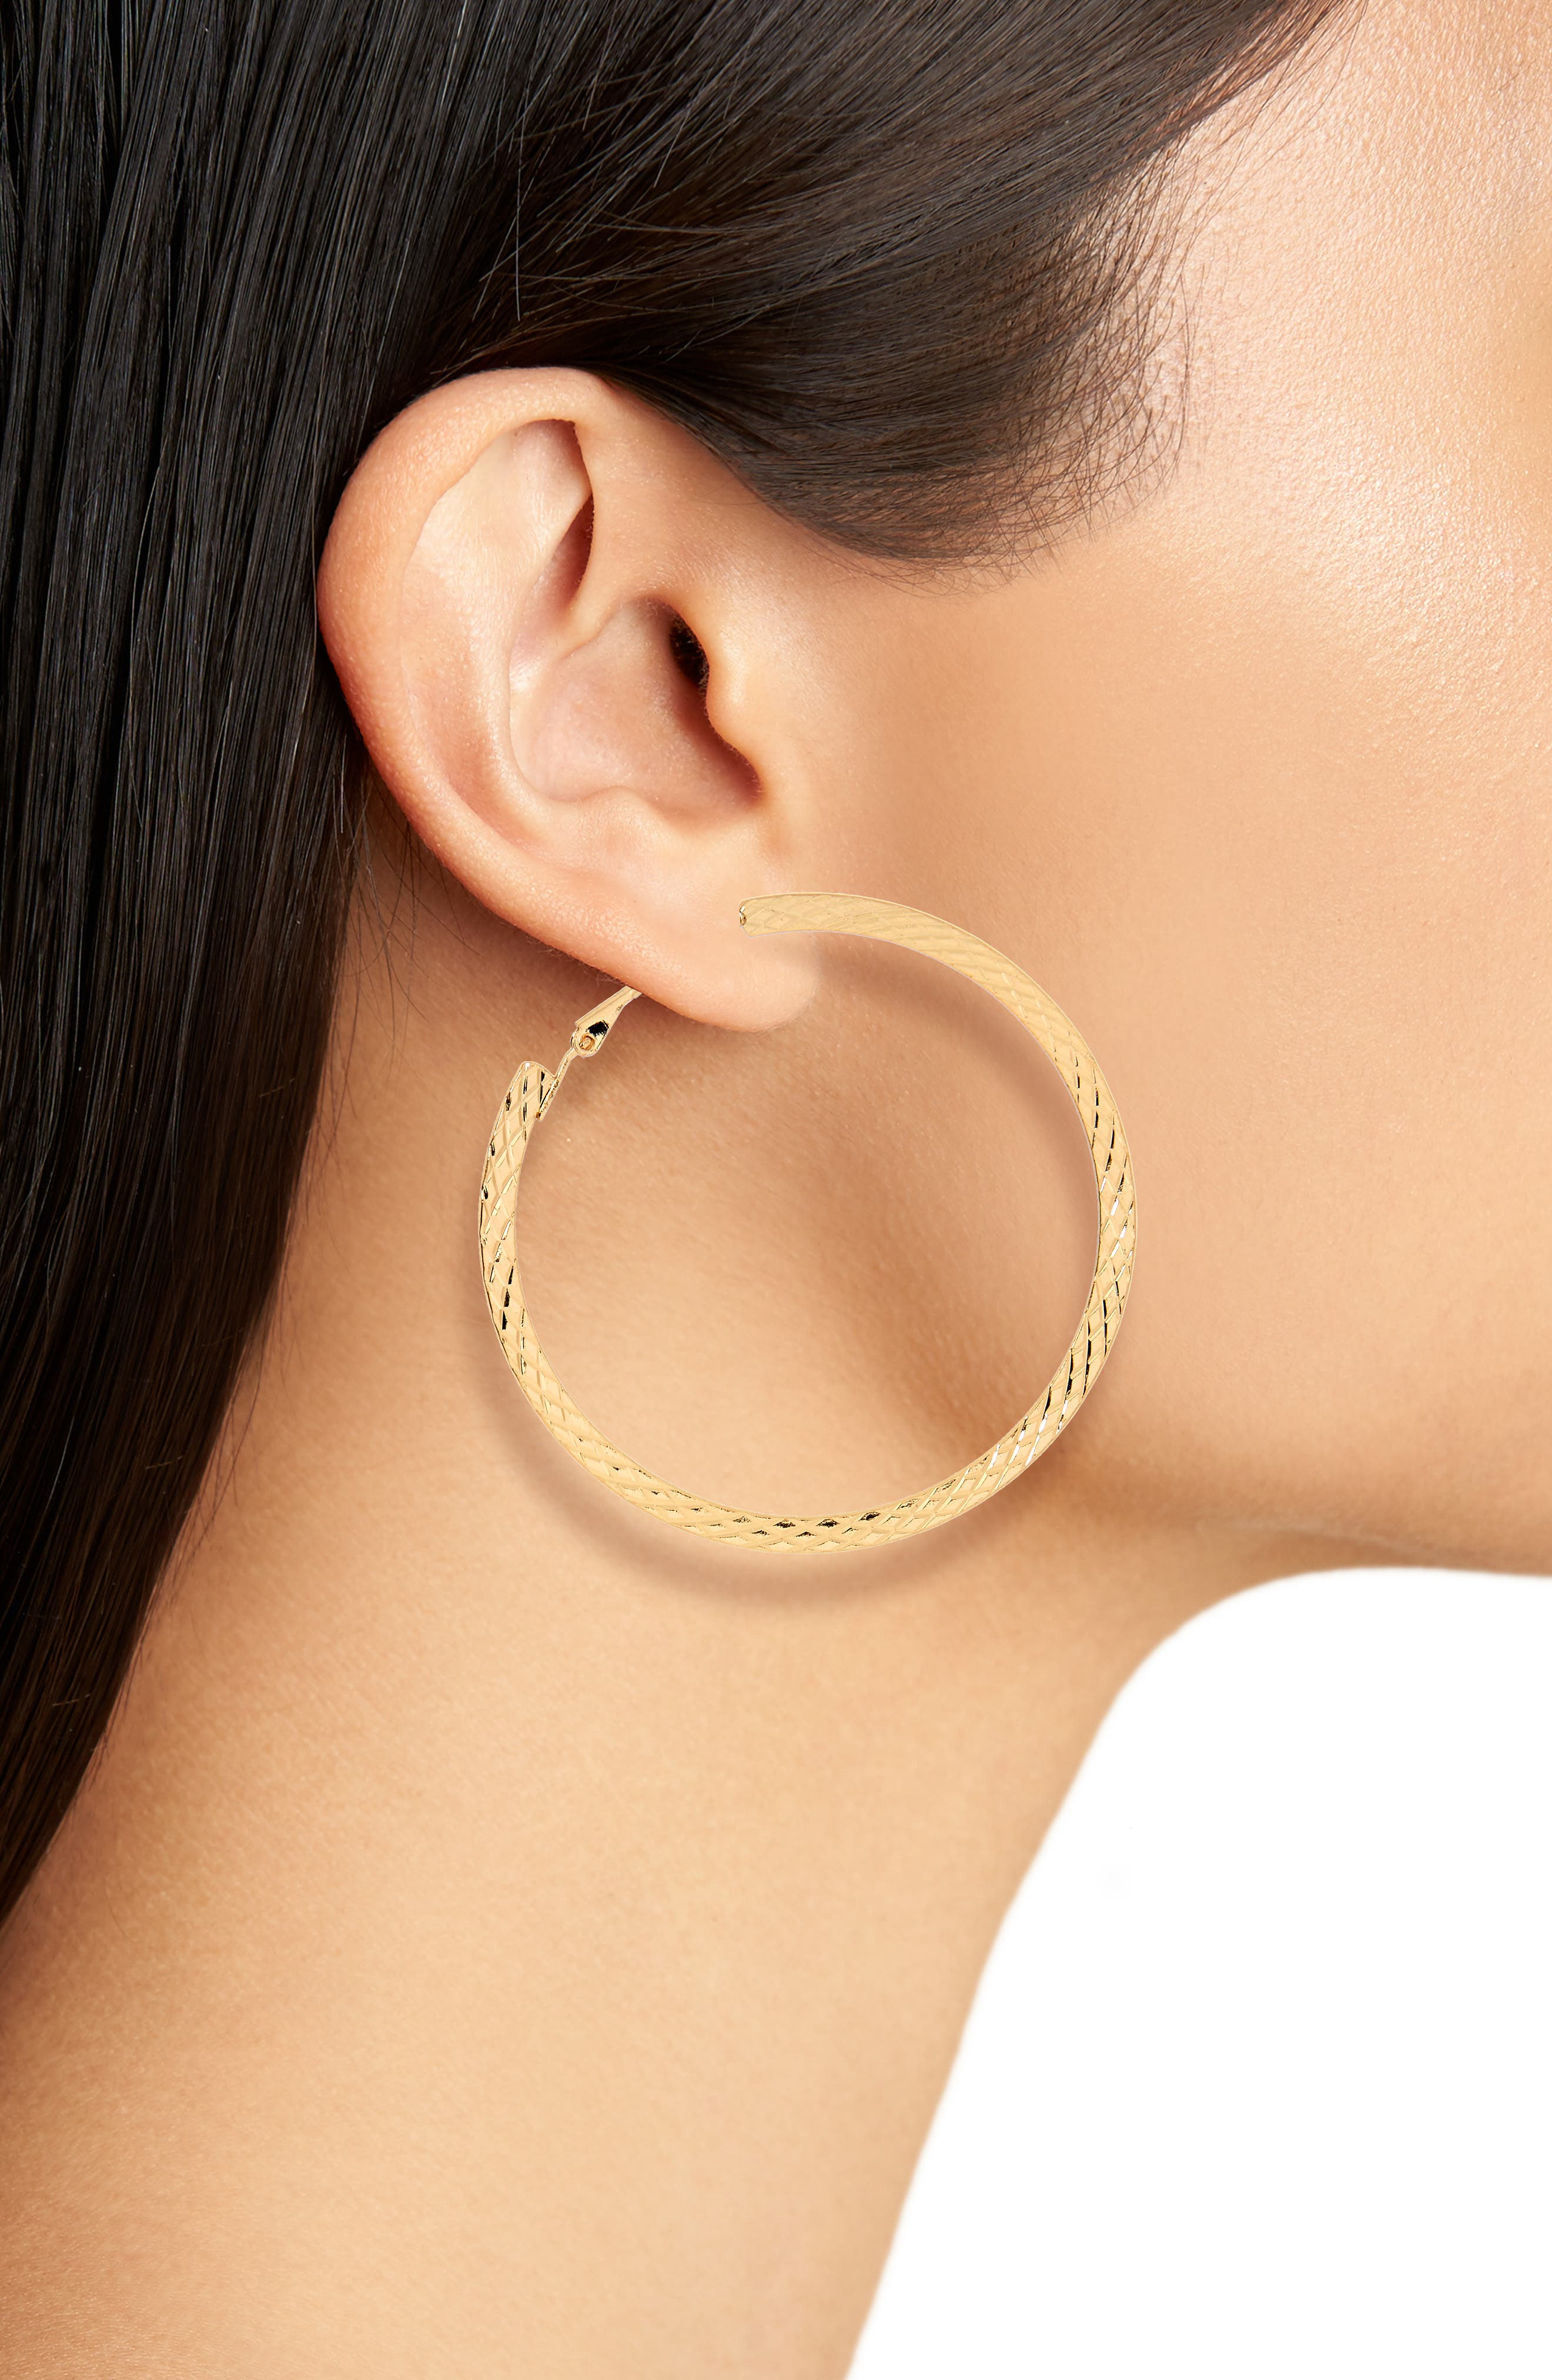 Etched Flat Hoop Earrings,                             Alternate thumbnail 2, color,                             Gold